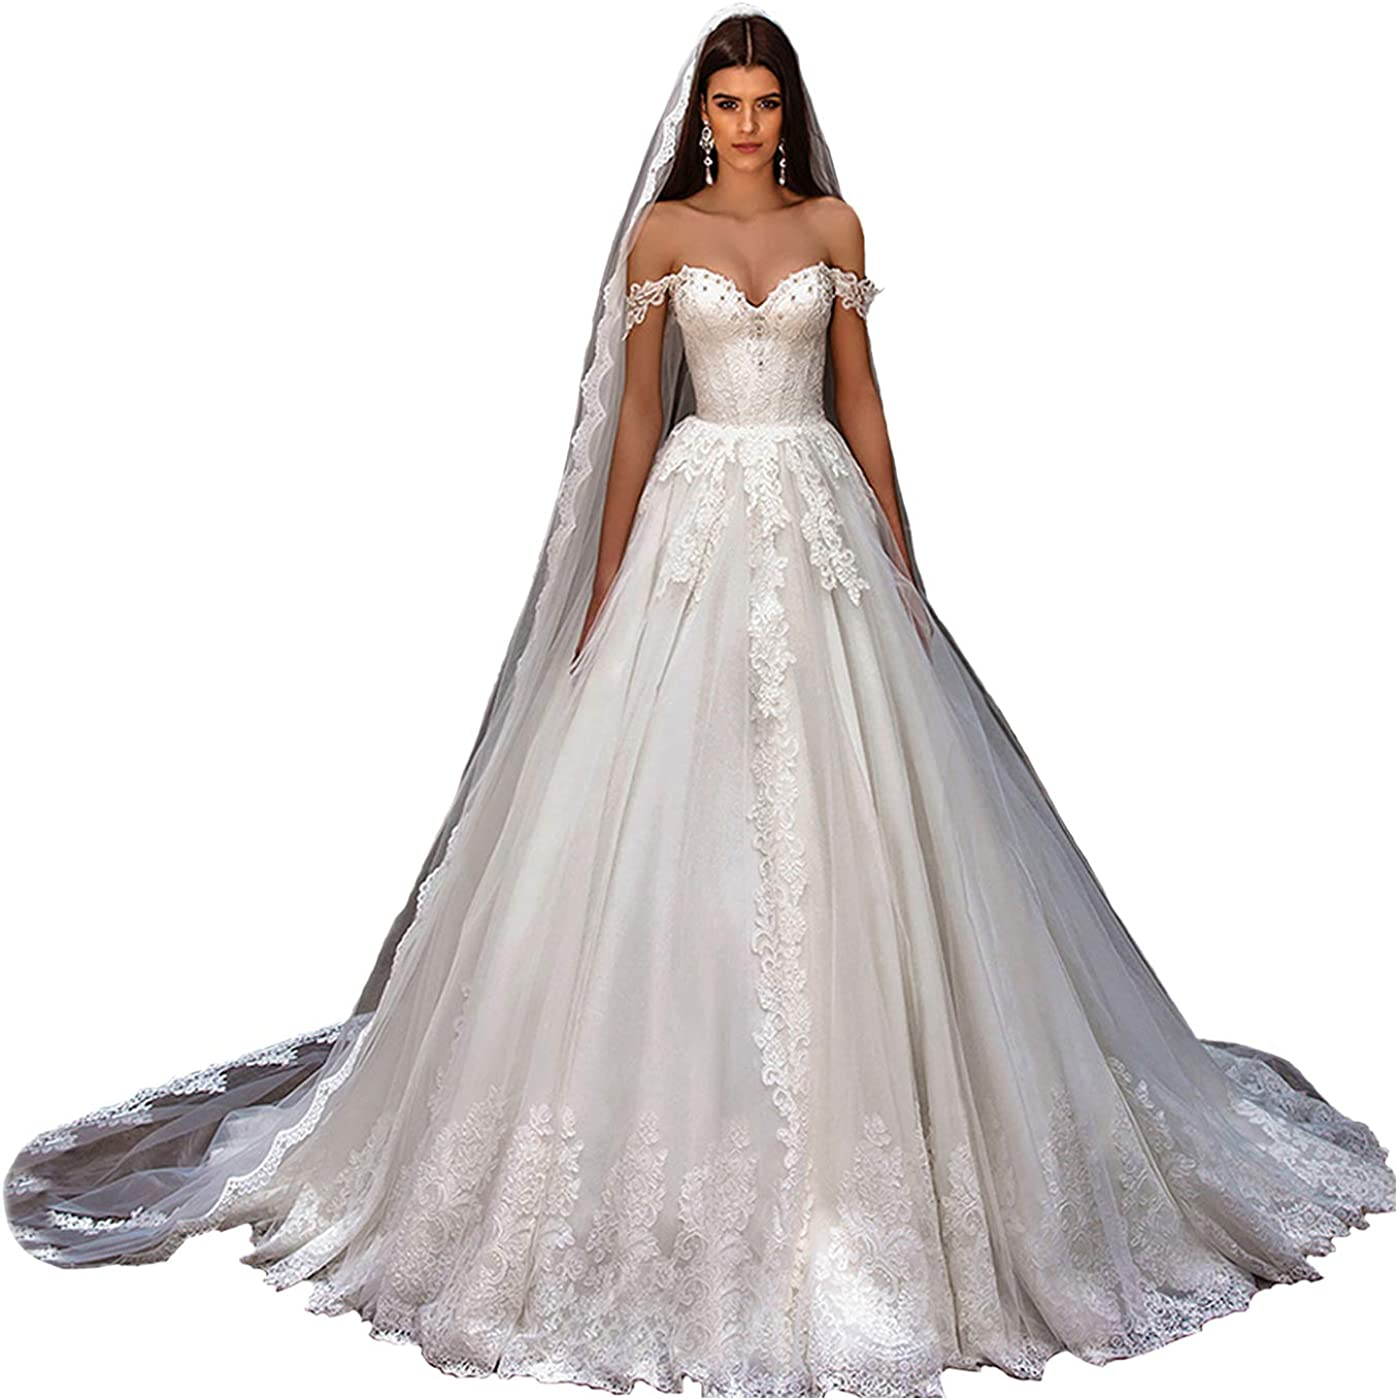 Fair Lady Princess Ball Gown Wedding Dresses for Bride 2020 Sexy Off Shoulder Lace Beaded Bridal Gowns